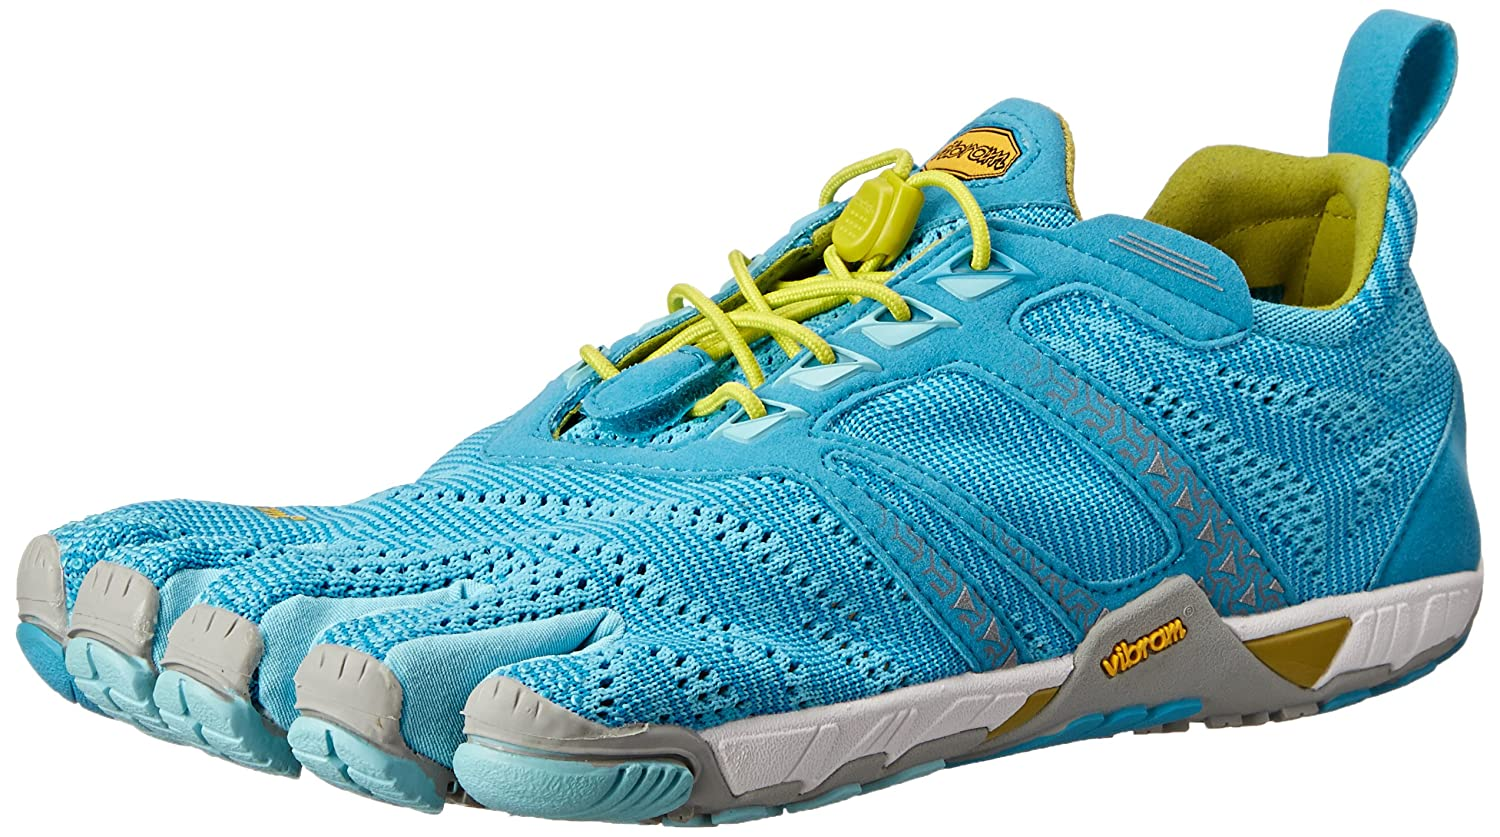 Vibram Women's KMD Evo Cross Training Shoe B00KR4TF6E 38 M EU / 7 B(M) US|Light Blue/Grey/Yellow